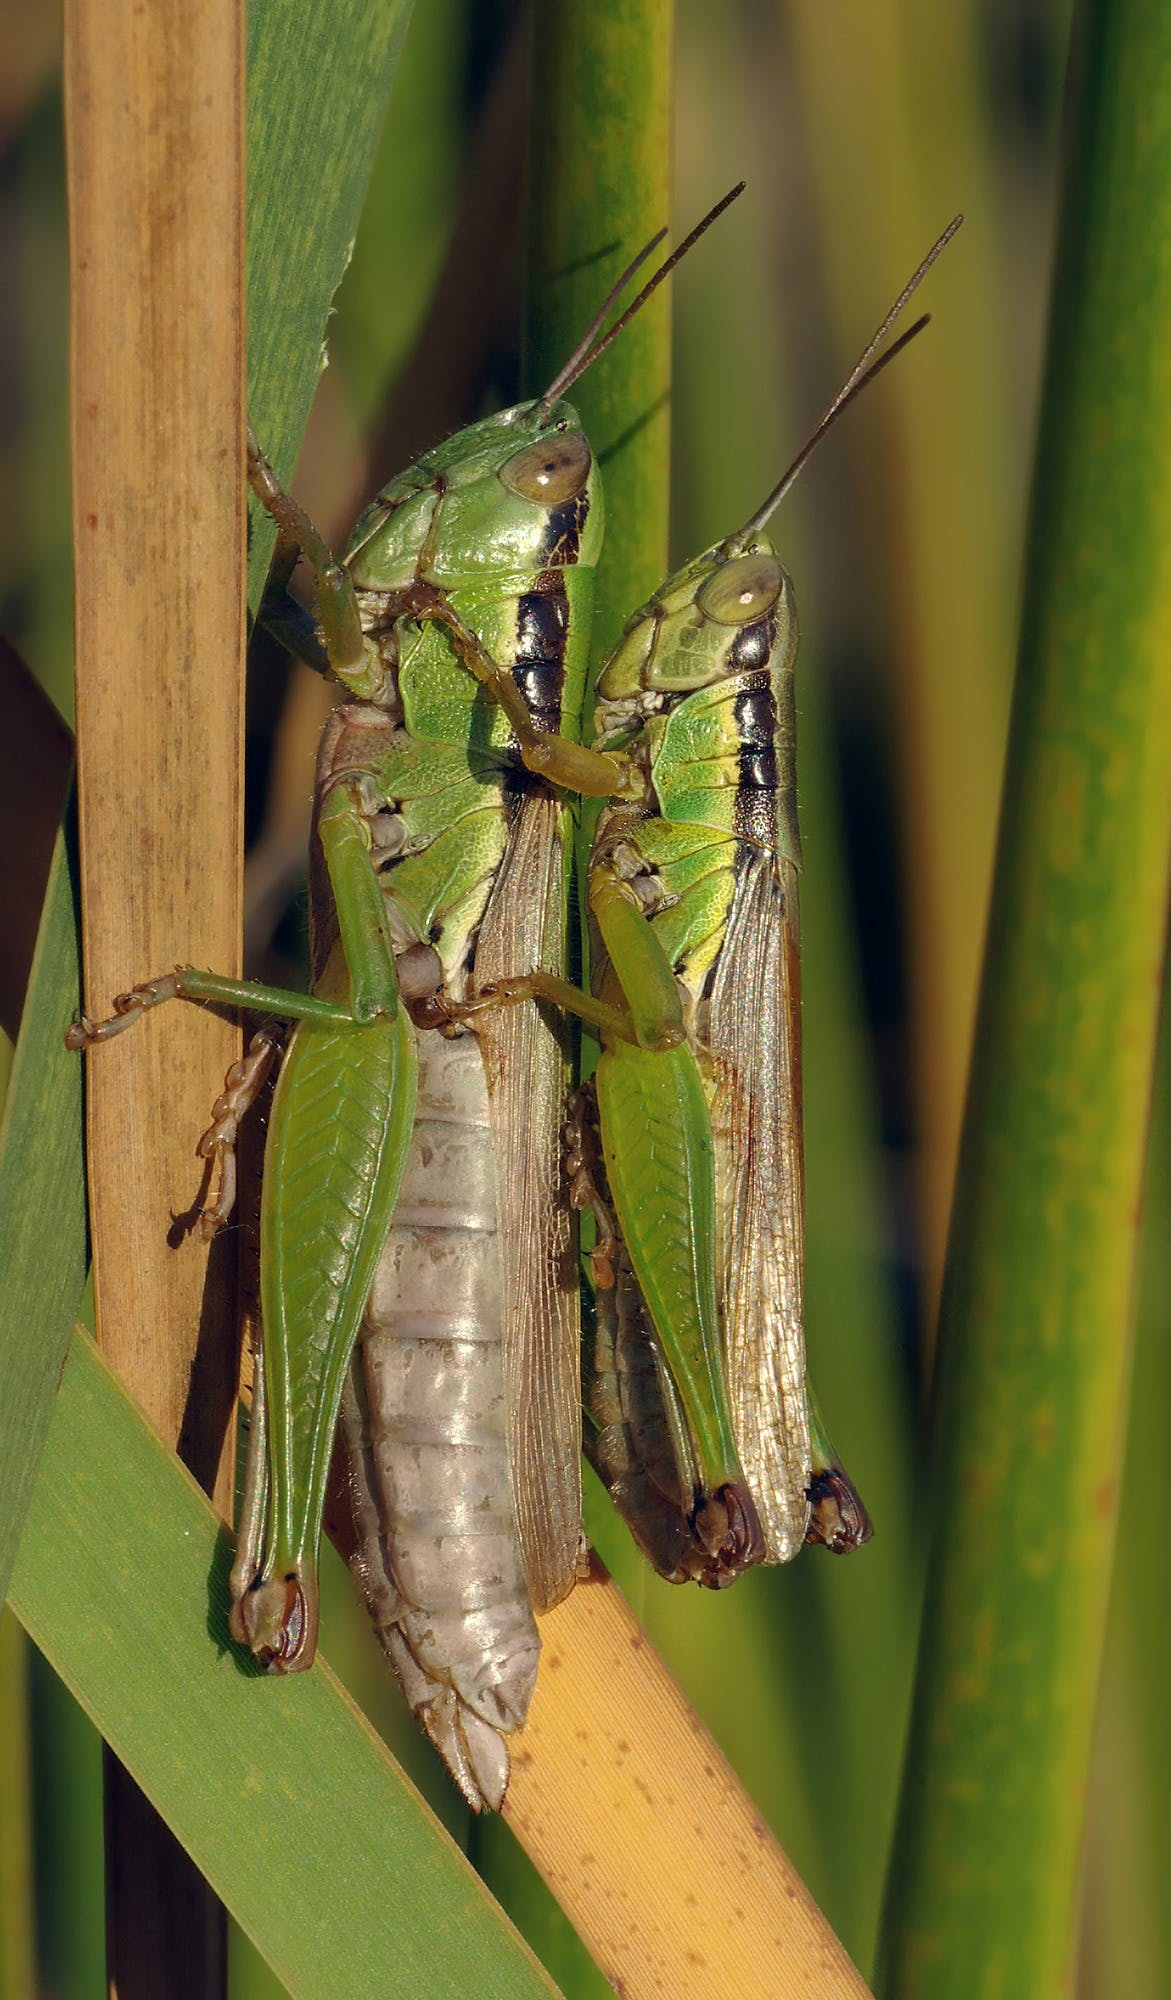 Grasshopper Making Each Other during Daytime